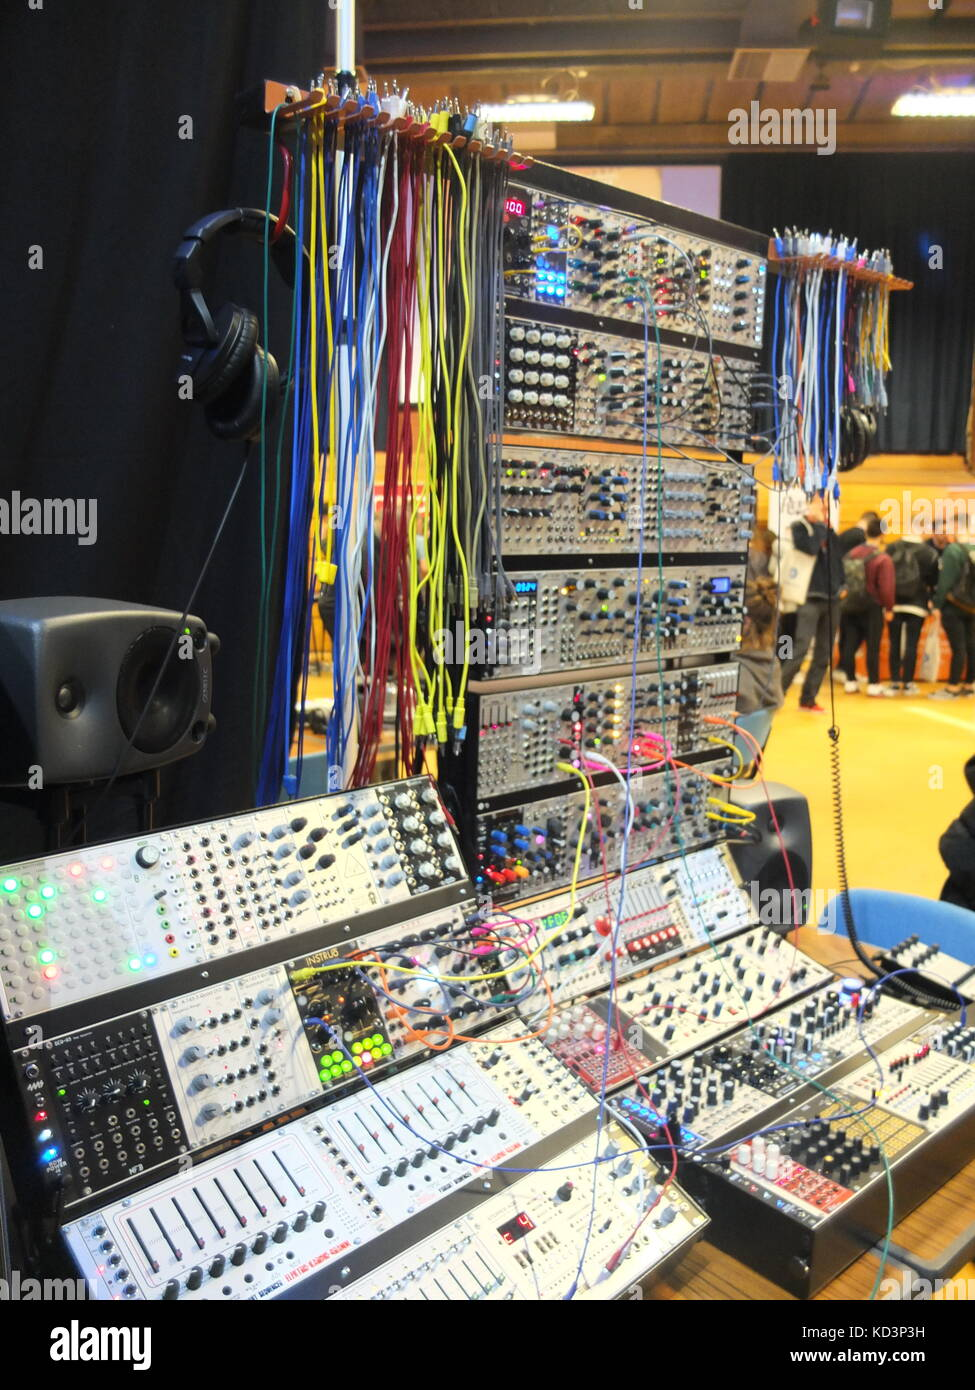 Modular synthesizers on display at Synthfest UK, The Octagon Centre, University of Sheffield (part of Sensoria Festival) - Stock Image